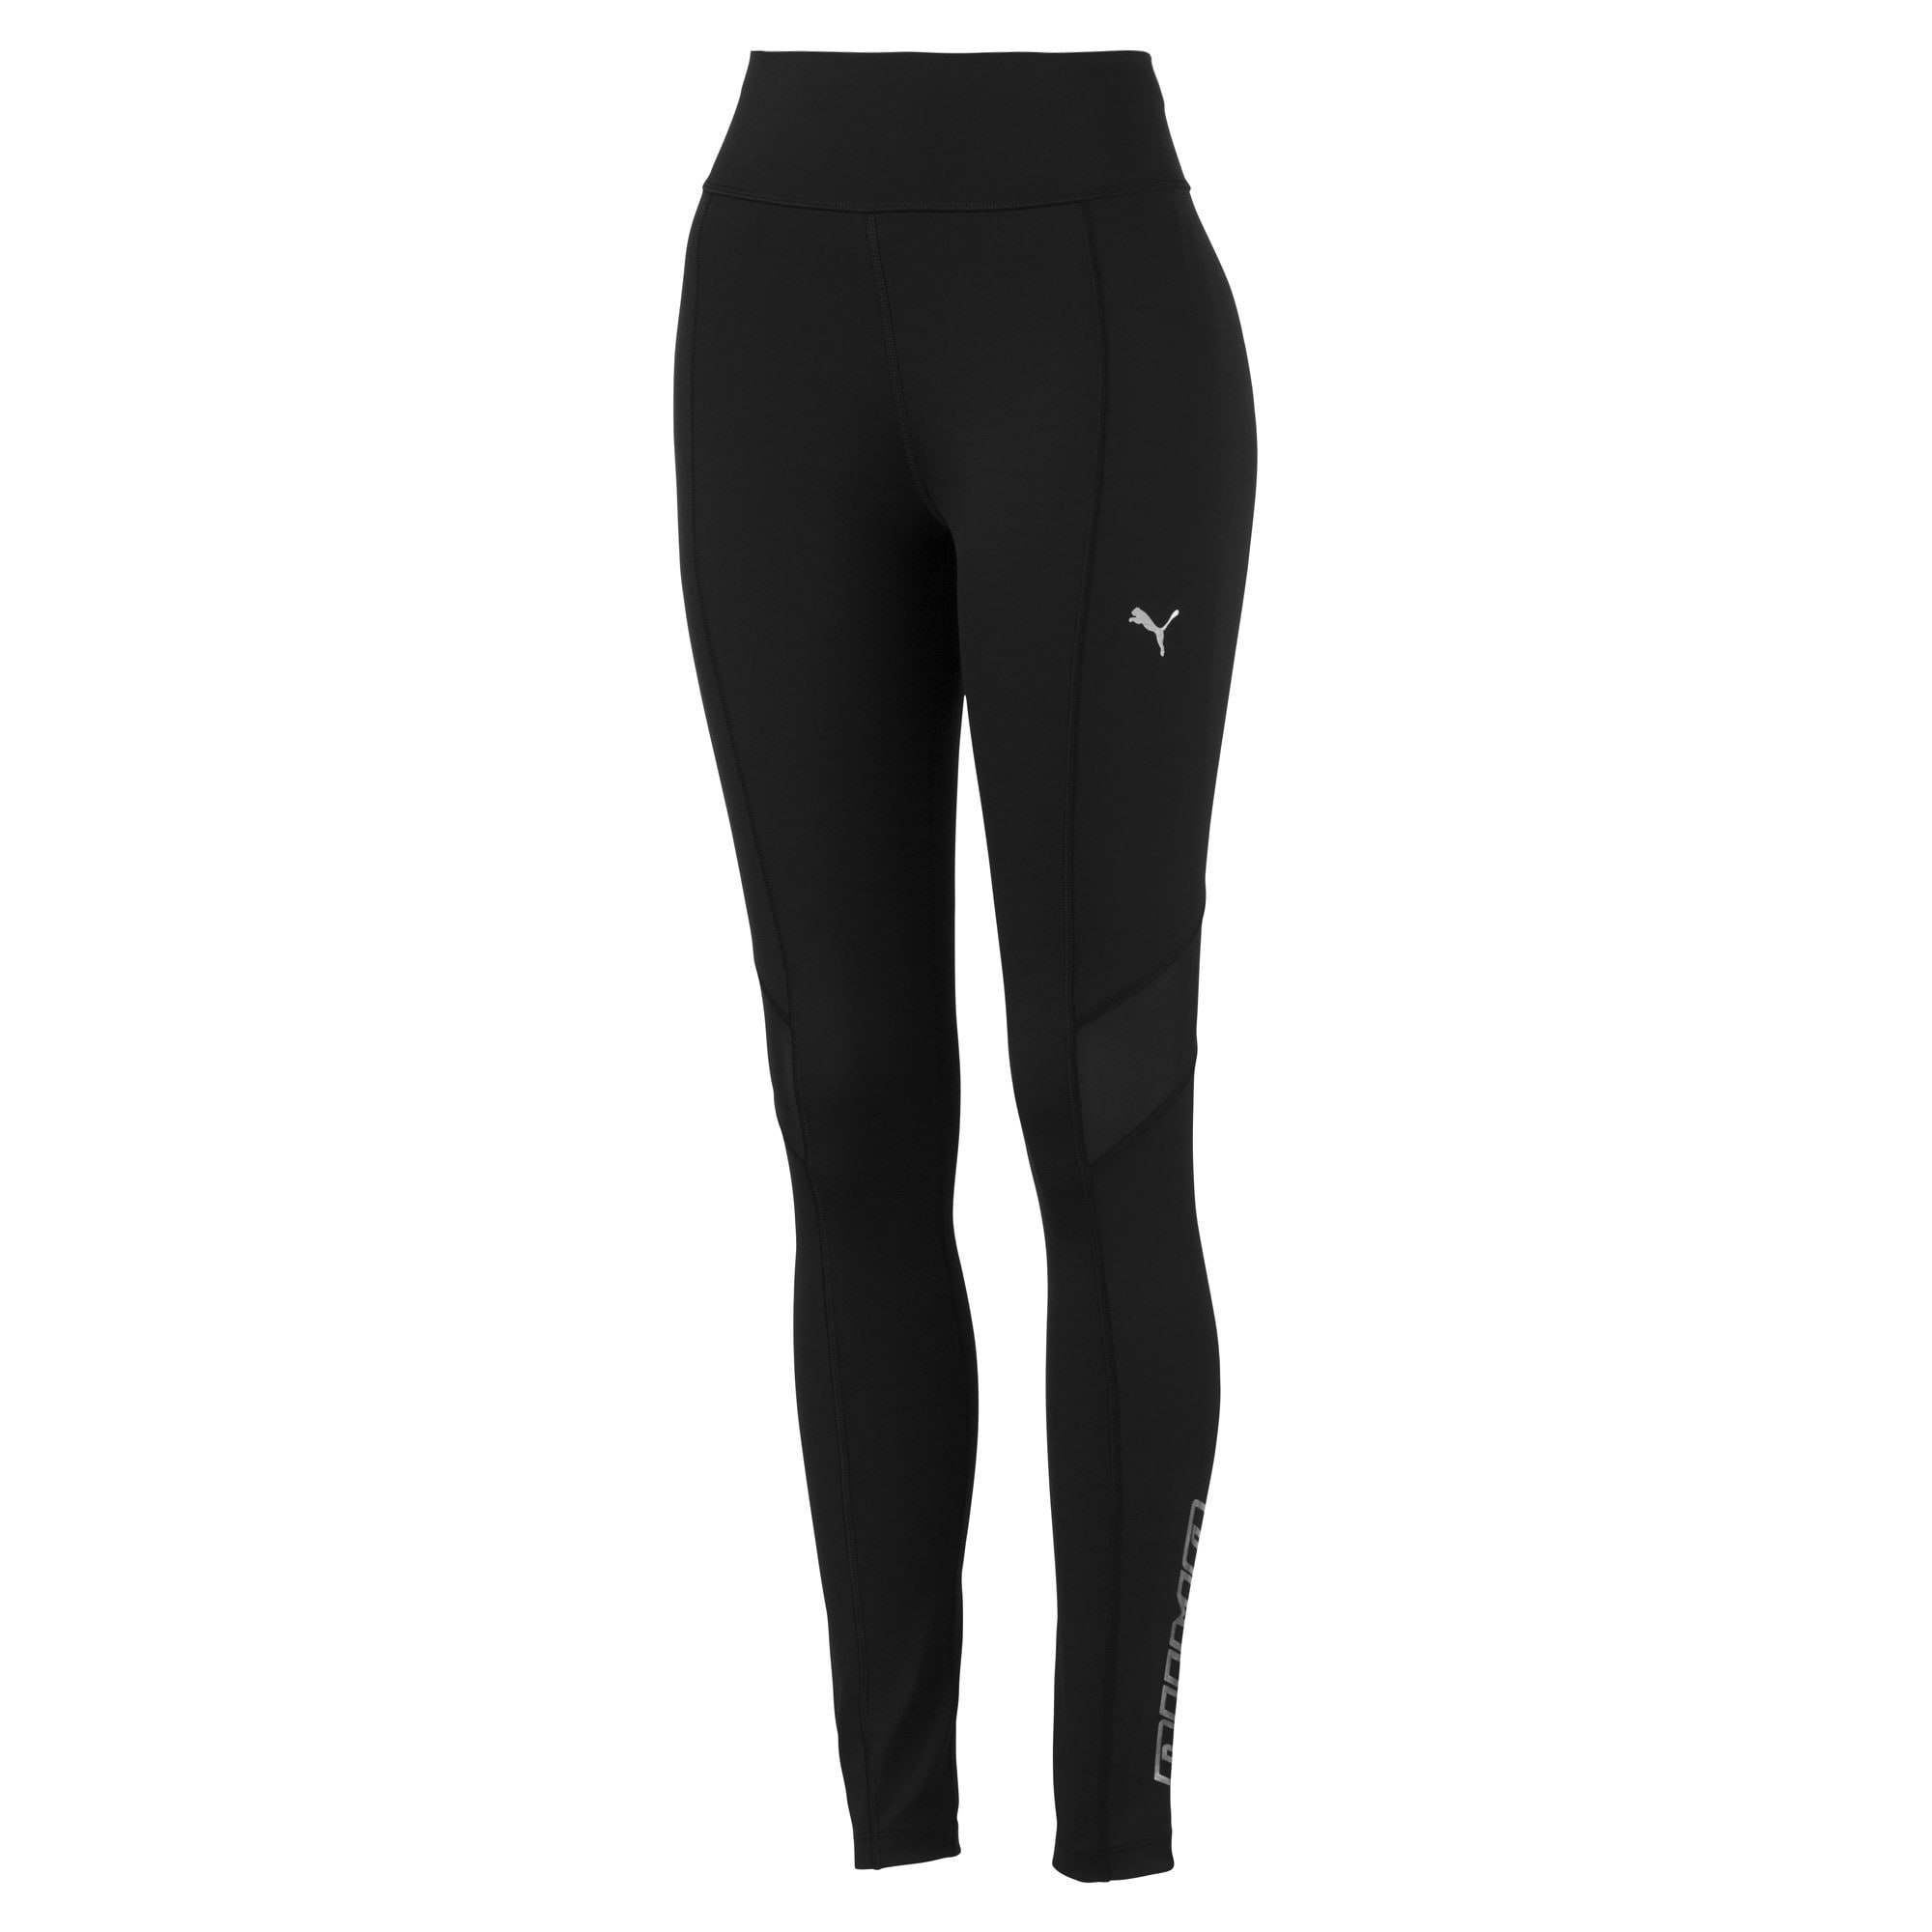 Thumbnail 4 of Trailblazer Women's Leggings, Puma Black, medium